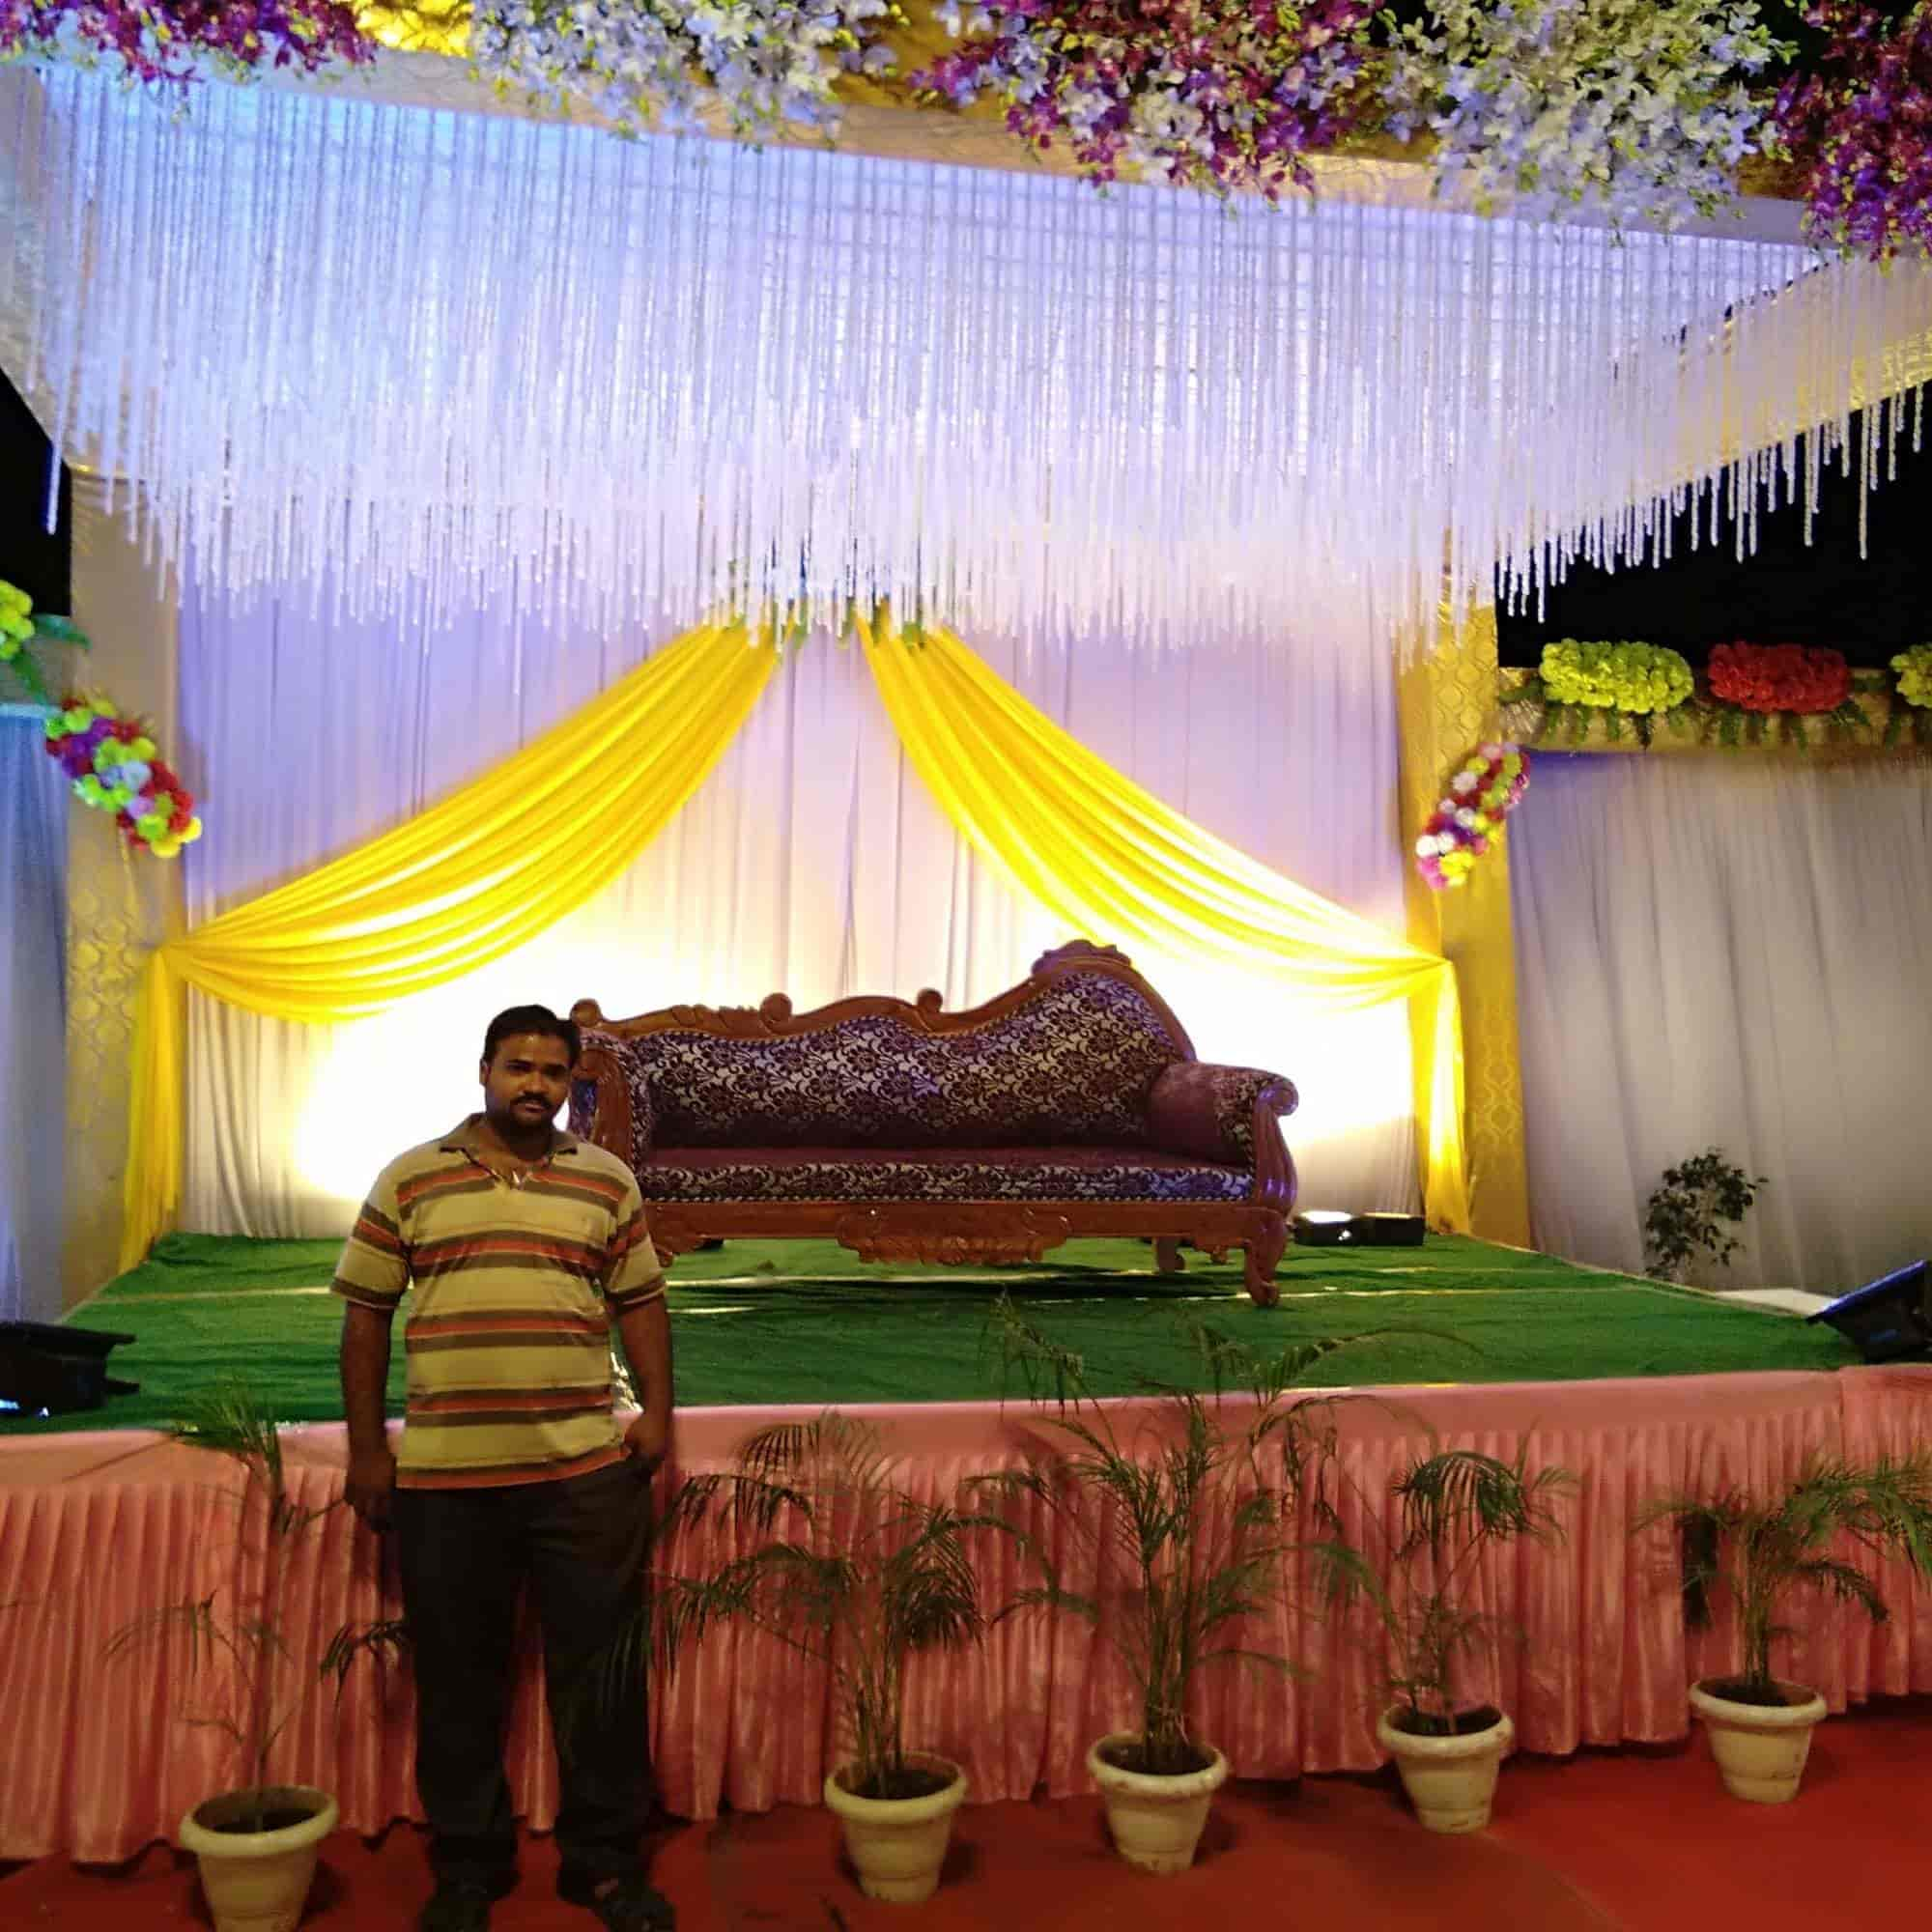 New Quality Tent House u0026 Catering Light Decoration Nehru Nagar - Caterers in Bhopal - Justdial & New Quality Tent House u0026 Catering Light Decoration Nehru Nagar ...